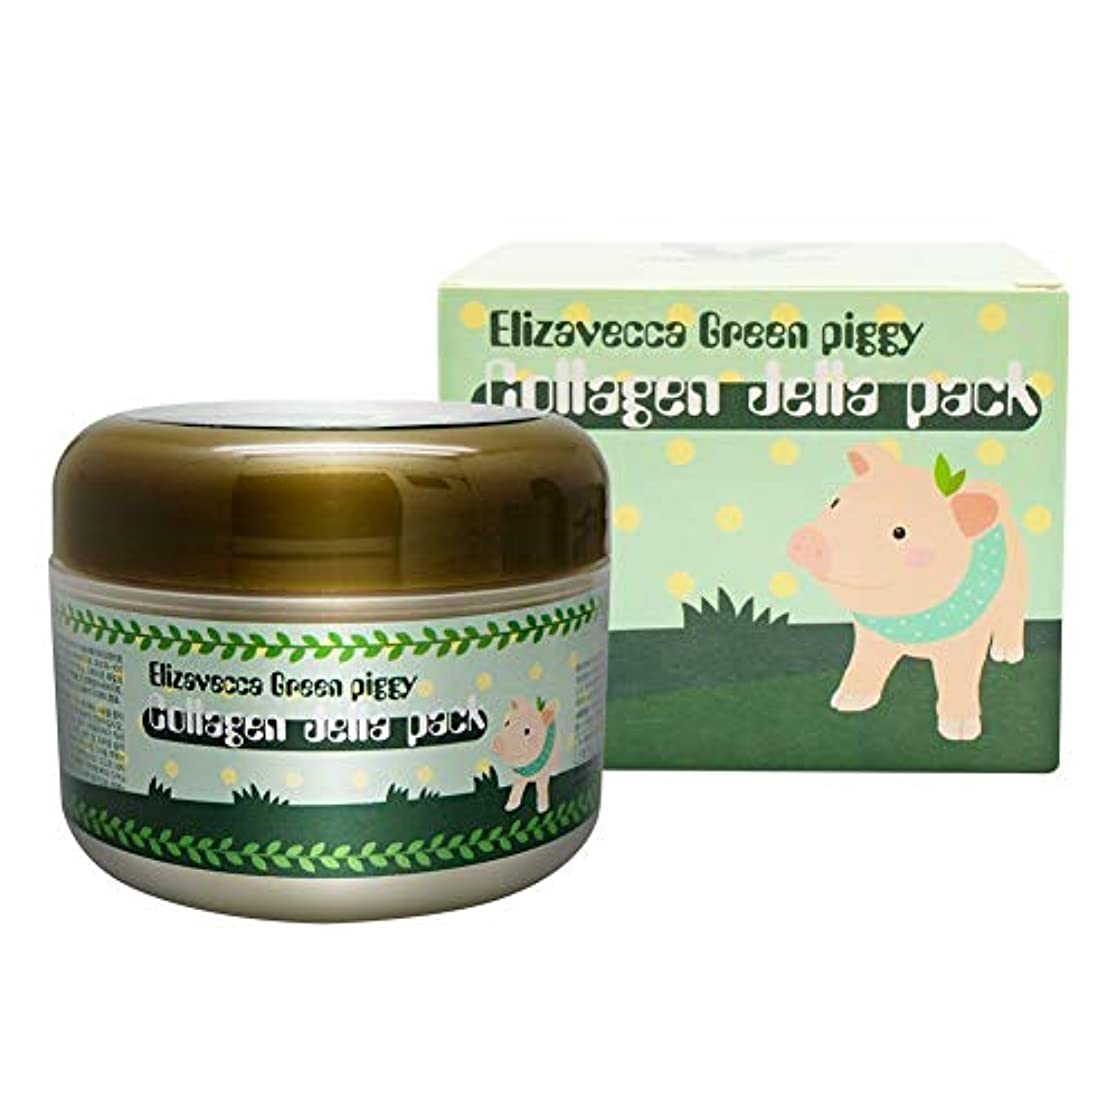 見物人姪矛盾するElizavecca Green Piggy Collagen Jella Pack pig mask 100g